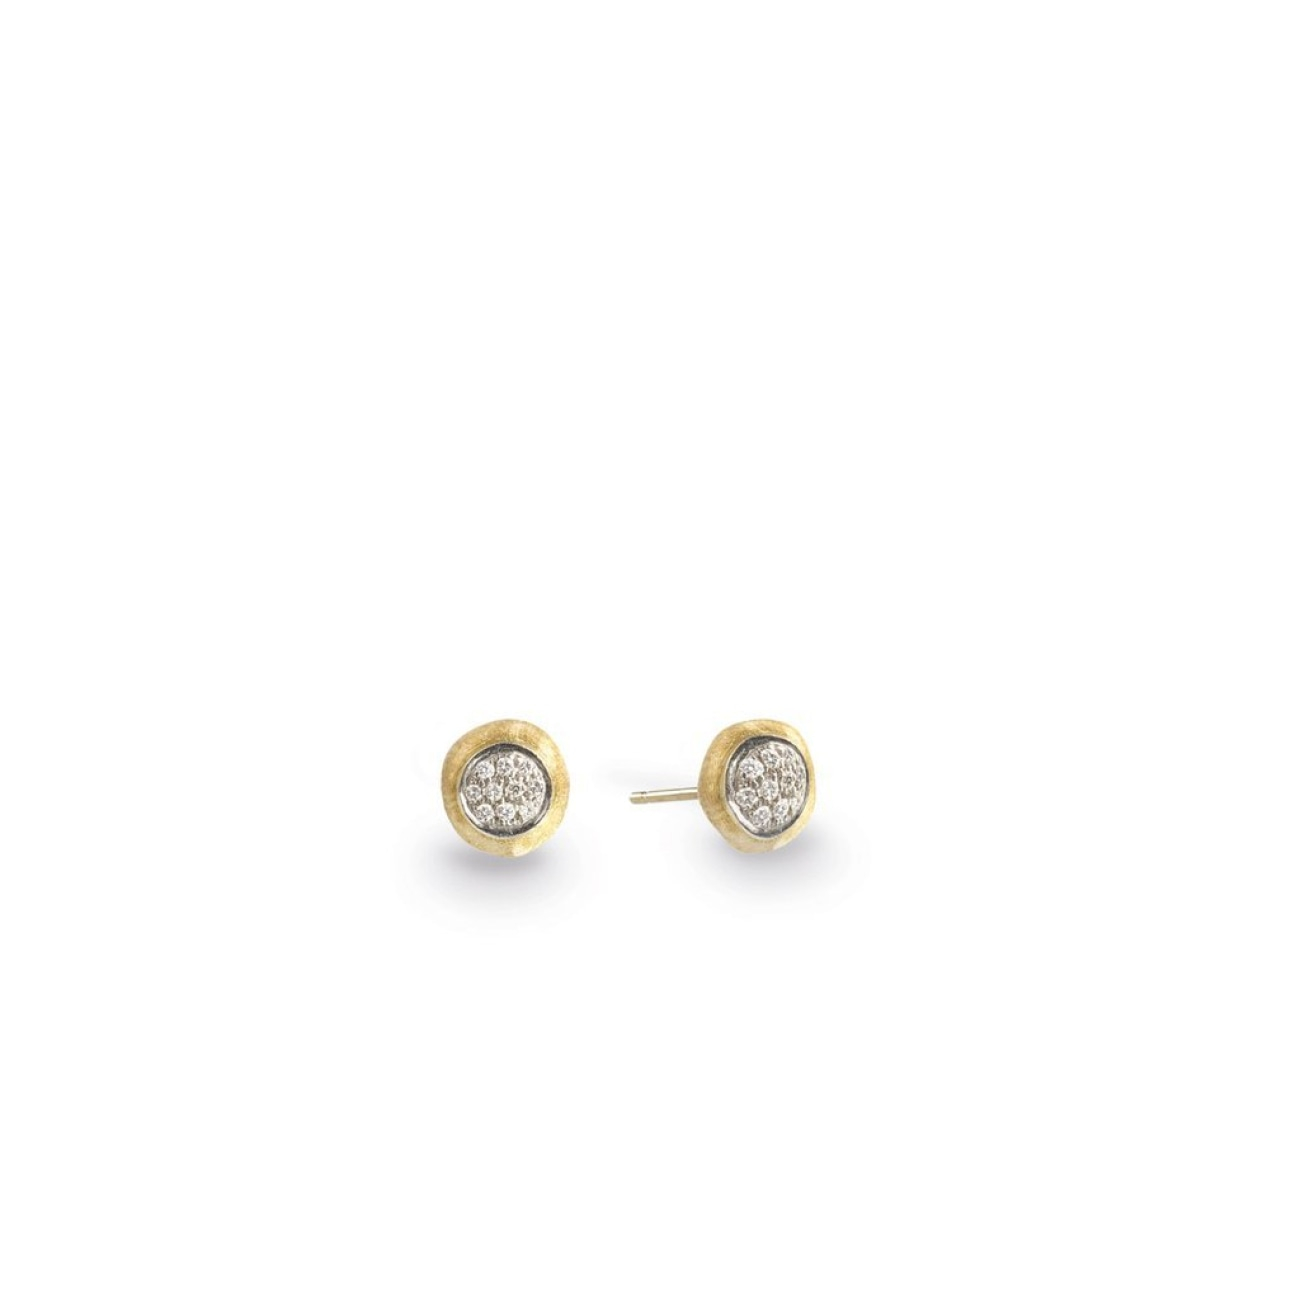 Marco Bicego Jewelry - 18K Yellow Gold & Diamond Pave Small Stud Earrings | Manfredi Jewels